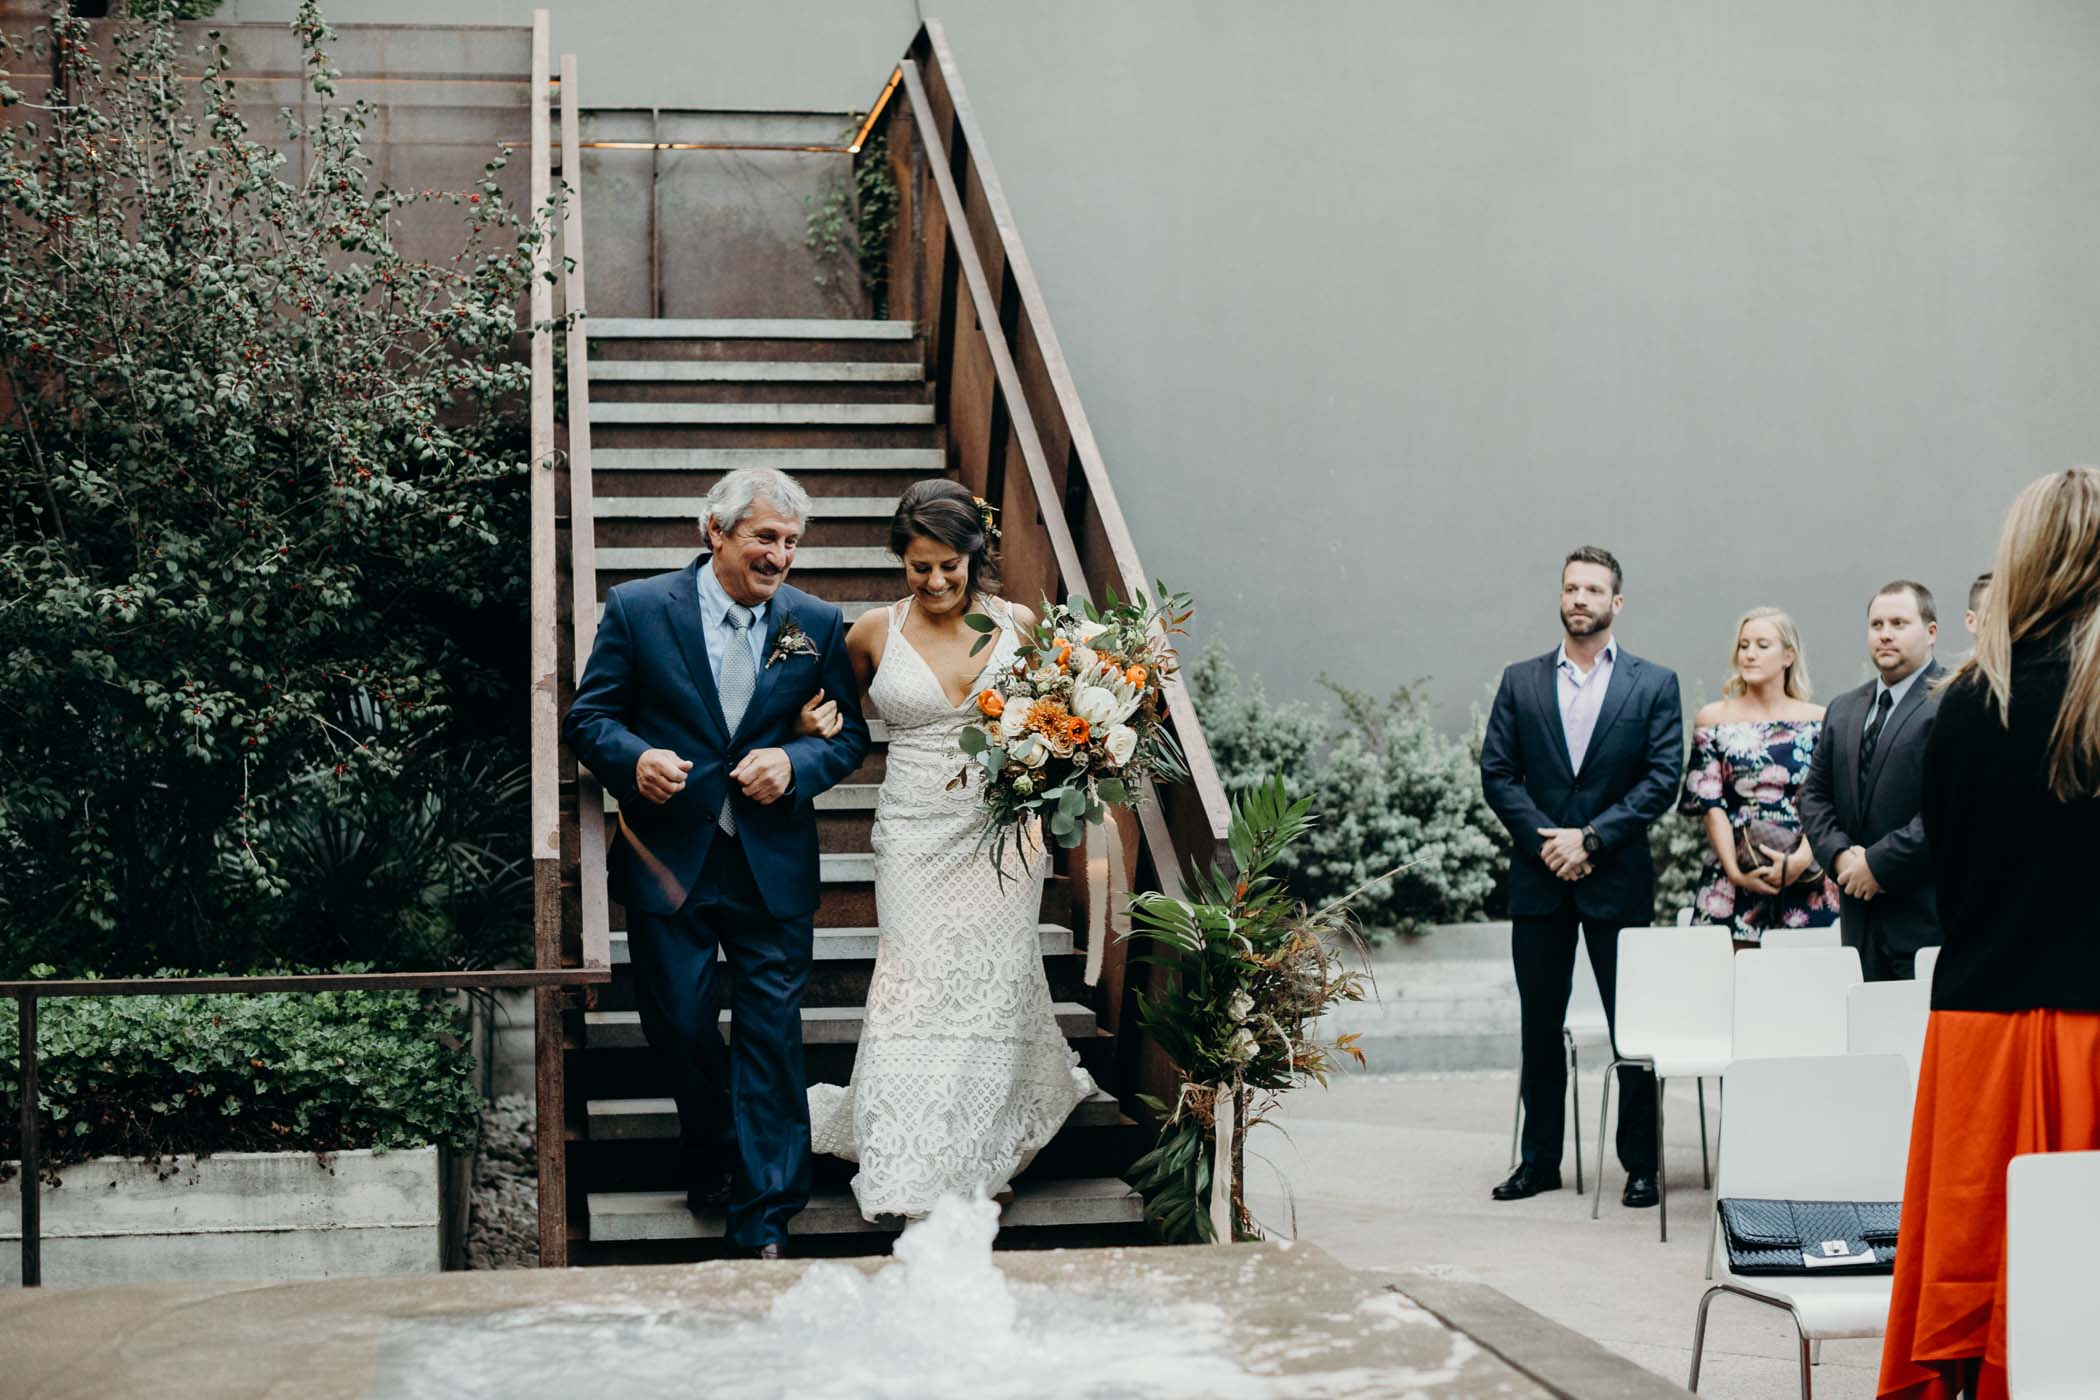 Bride and her dad walking down a staircase to the the alter.